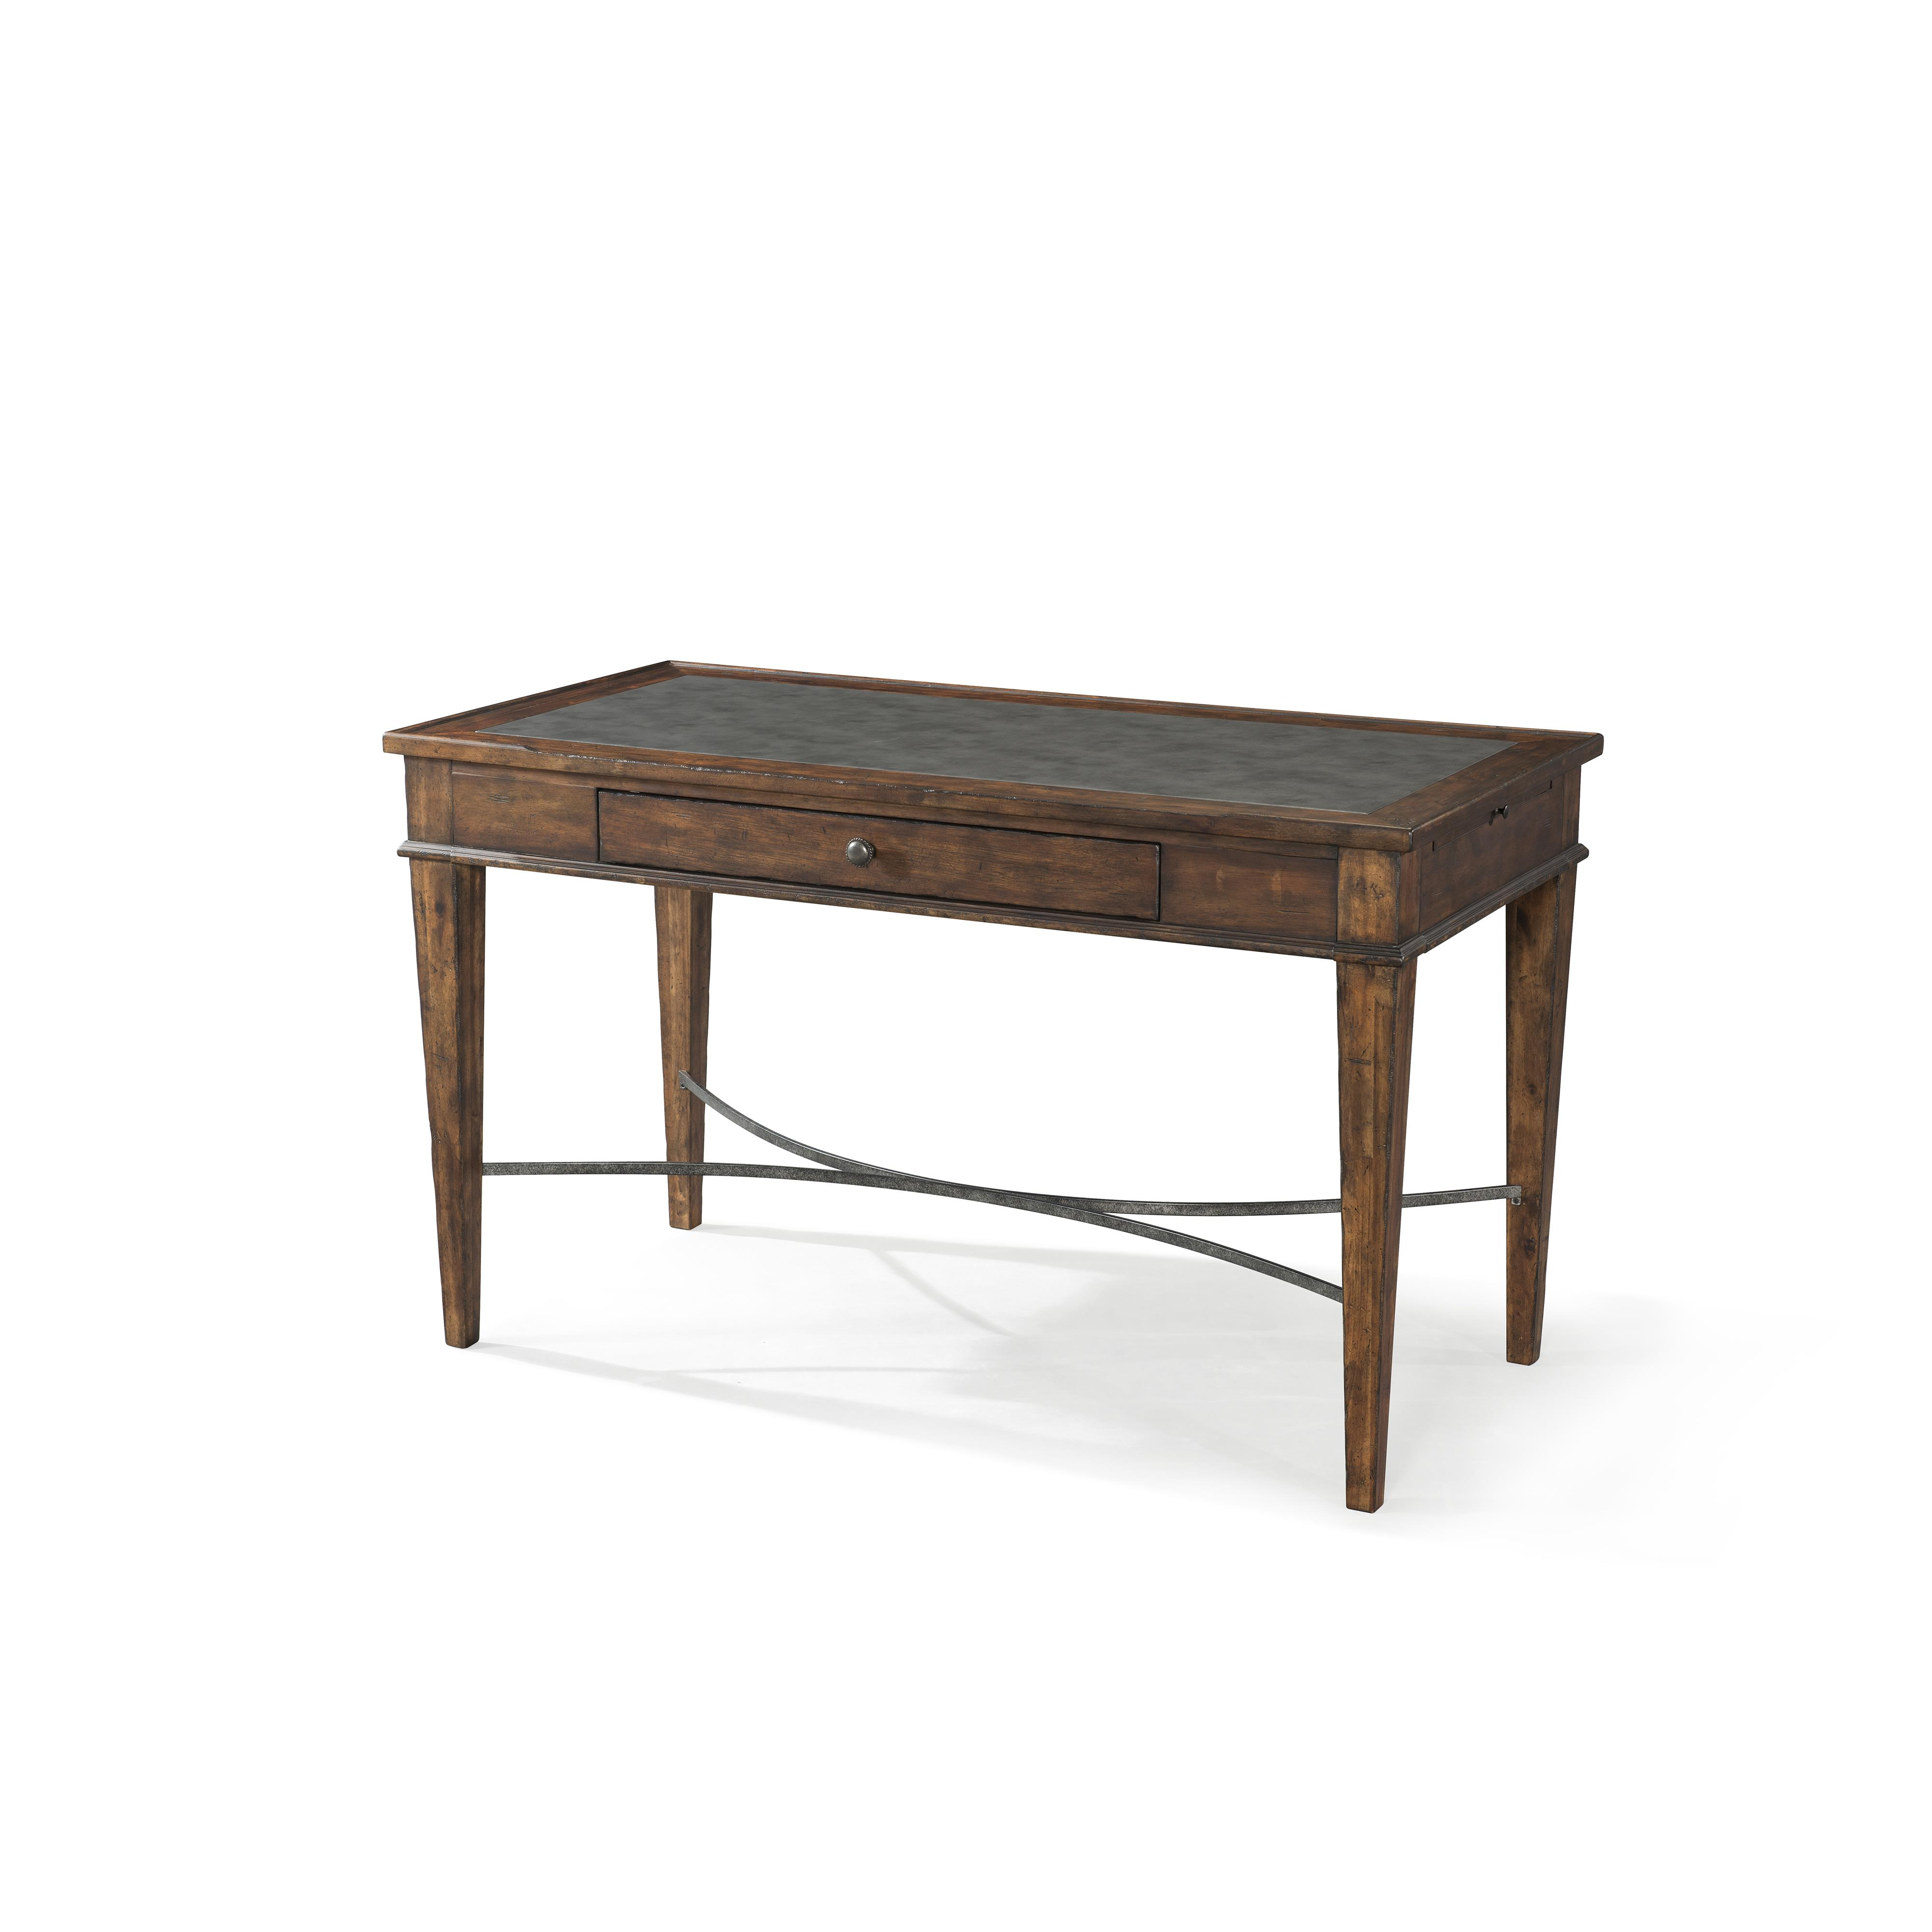 Trisha Yearwood Home Collection by Klaussner Trisha Yearwood Home Xxxu0026#39;s and Ooou0026#39;s Table Desk ...